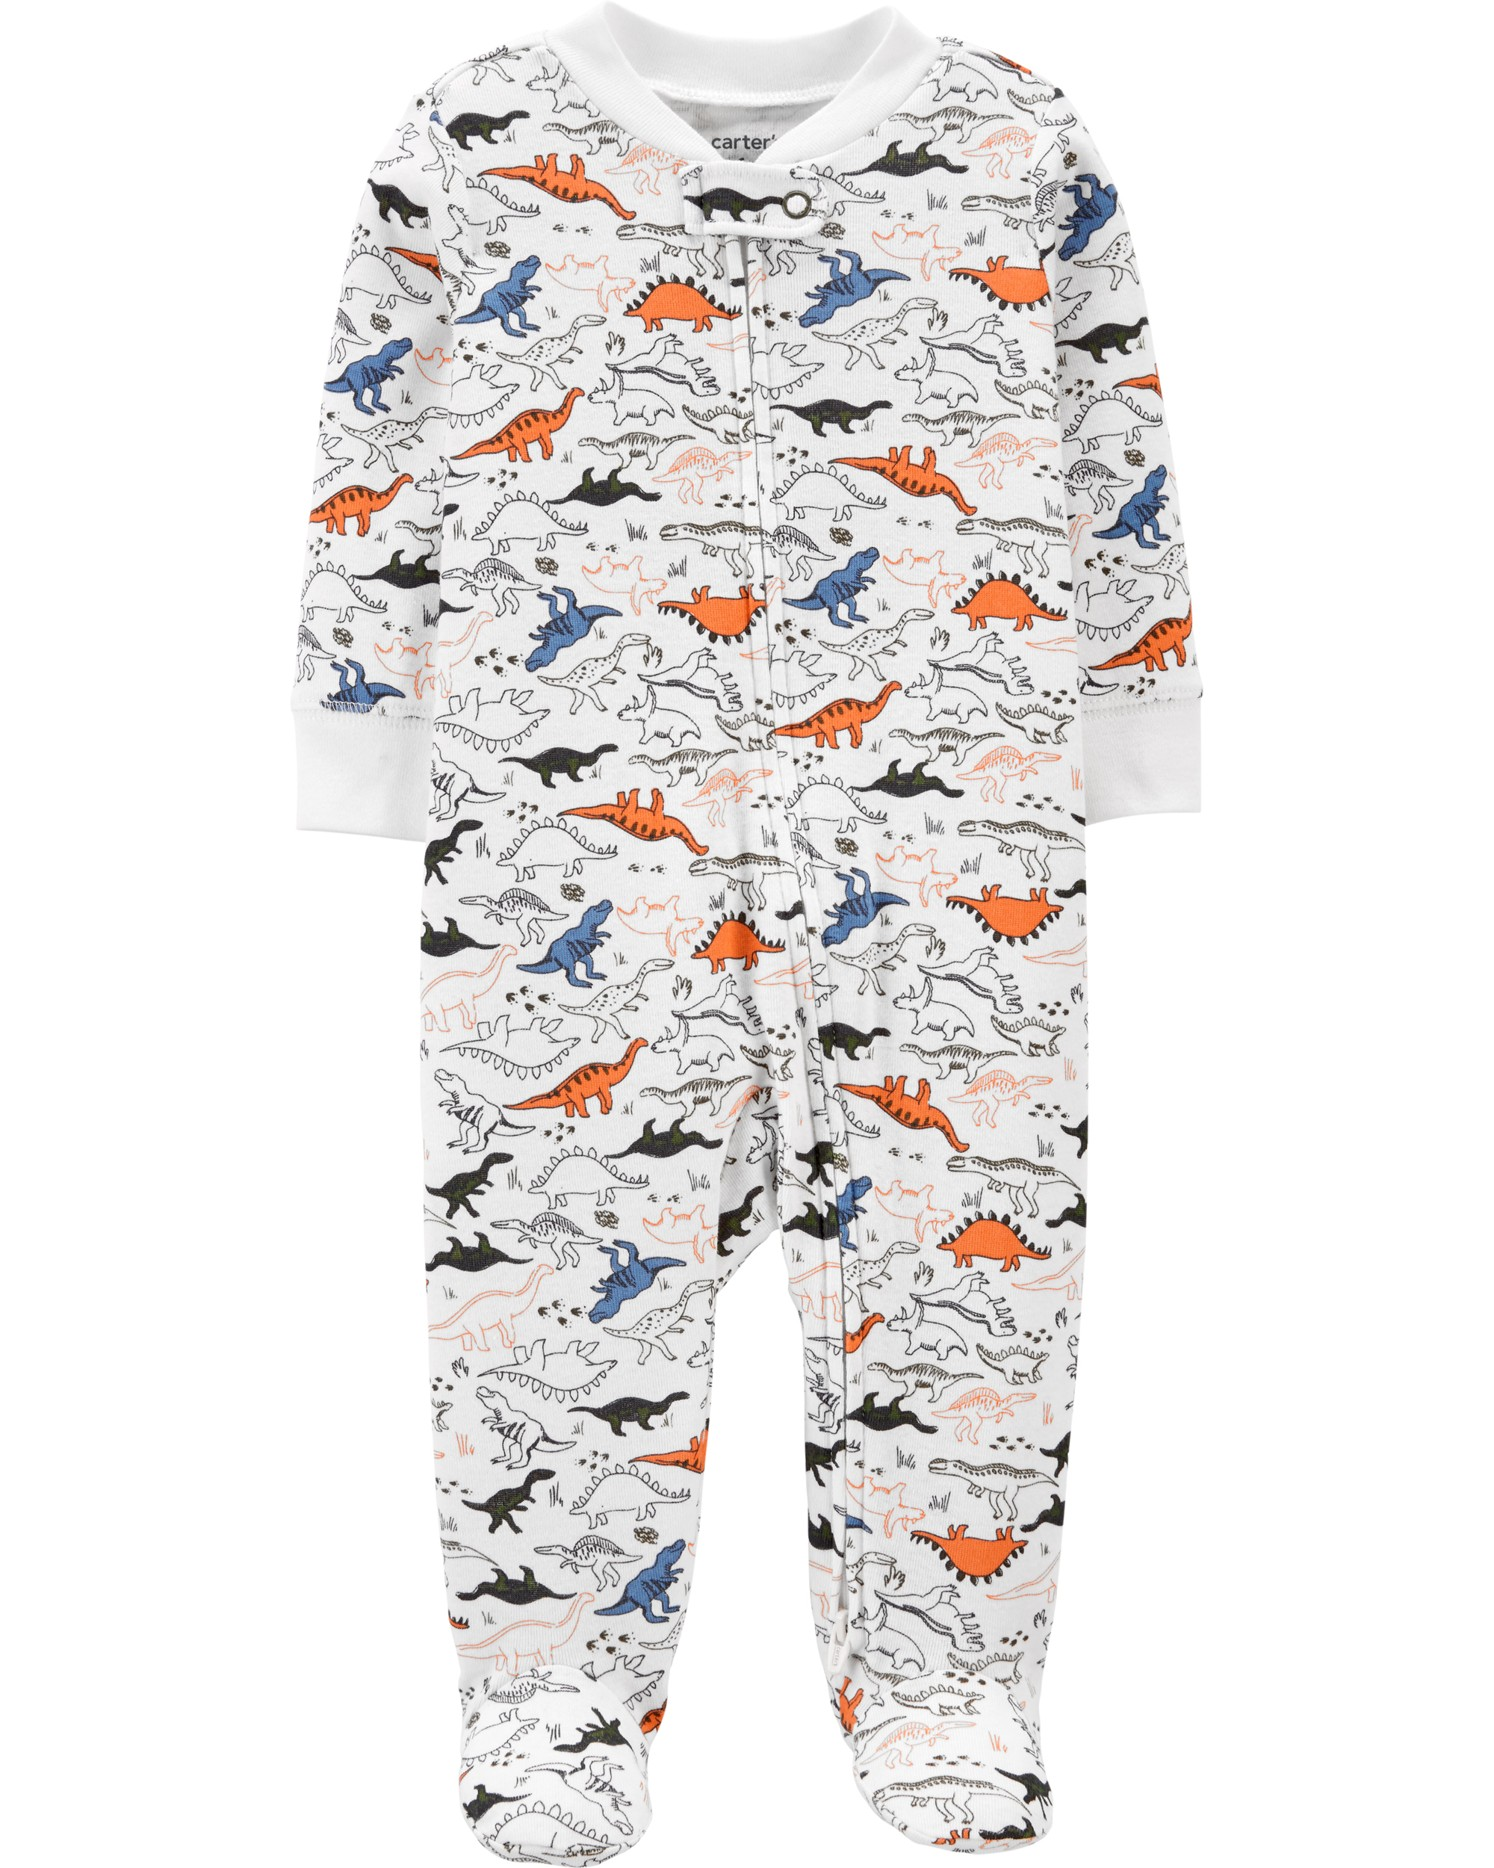 CARTERS Overal na zip Dinosaur chlapec LBB NBvel. 56